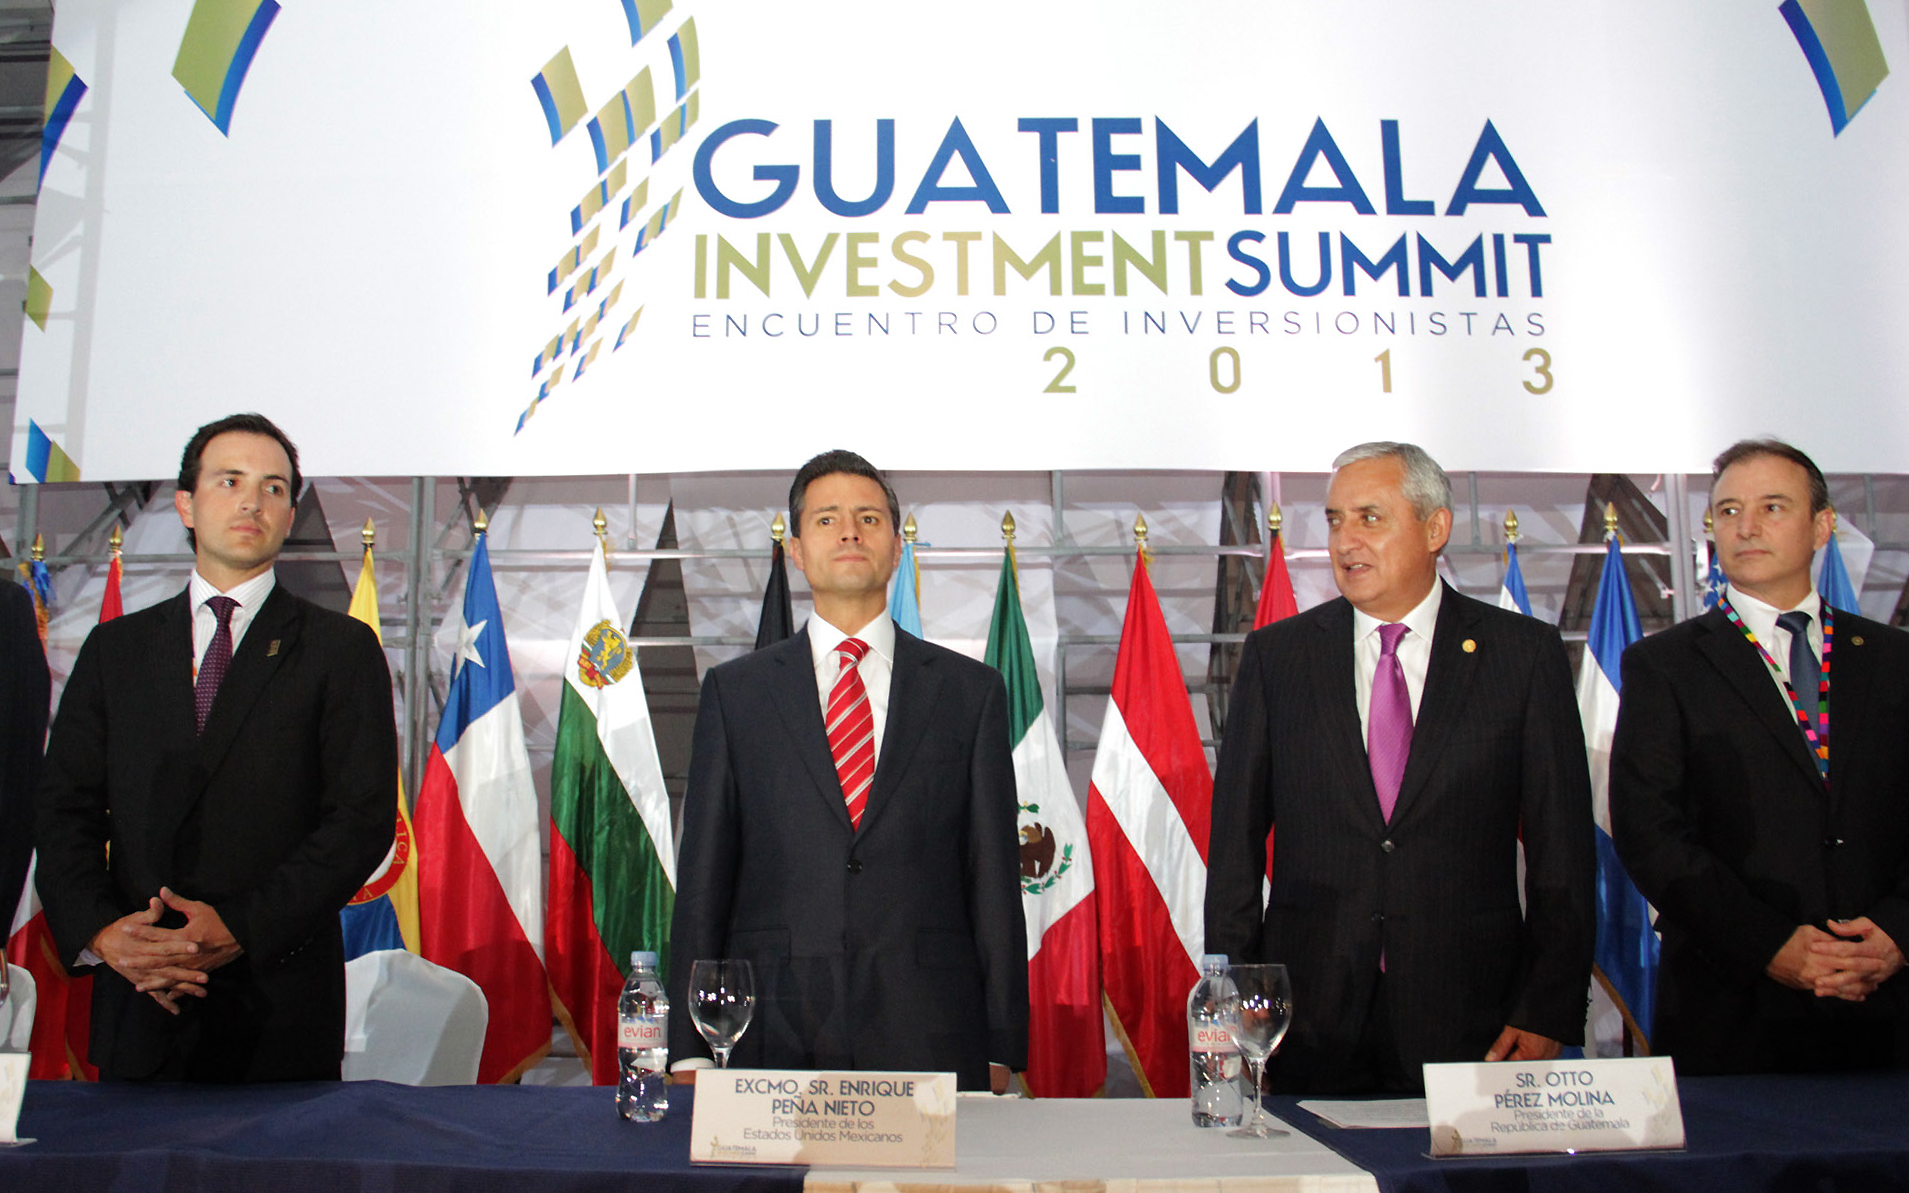 Guatemala investment summit 2013 8925411236 o